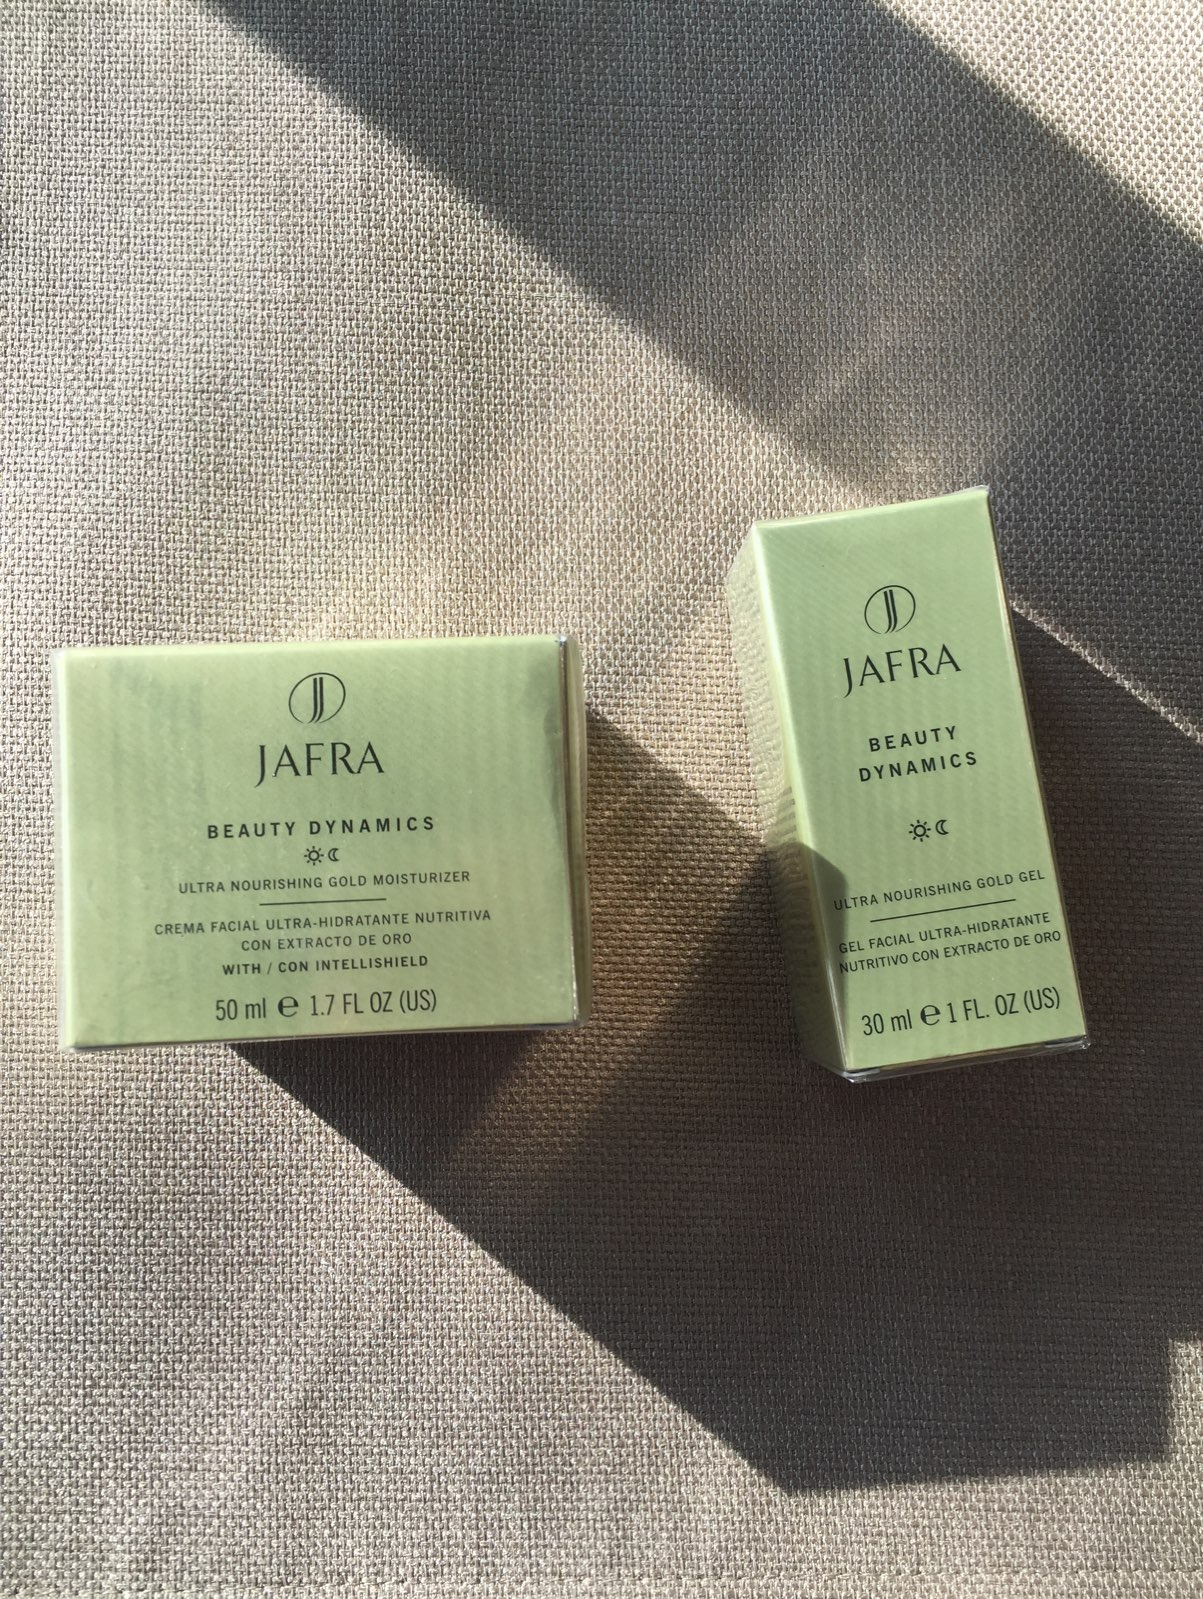 Jual Jafra Ultra Nourishing Gold Gel Cantik Olshopp Tokopedia Source · two piece Jafra Set